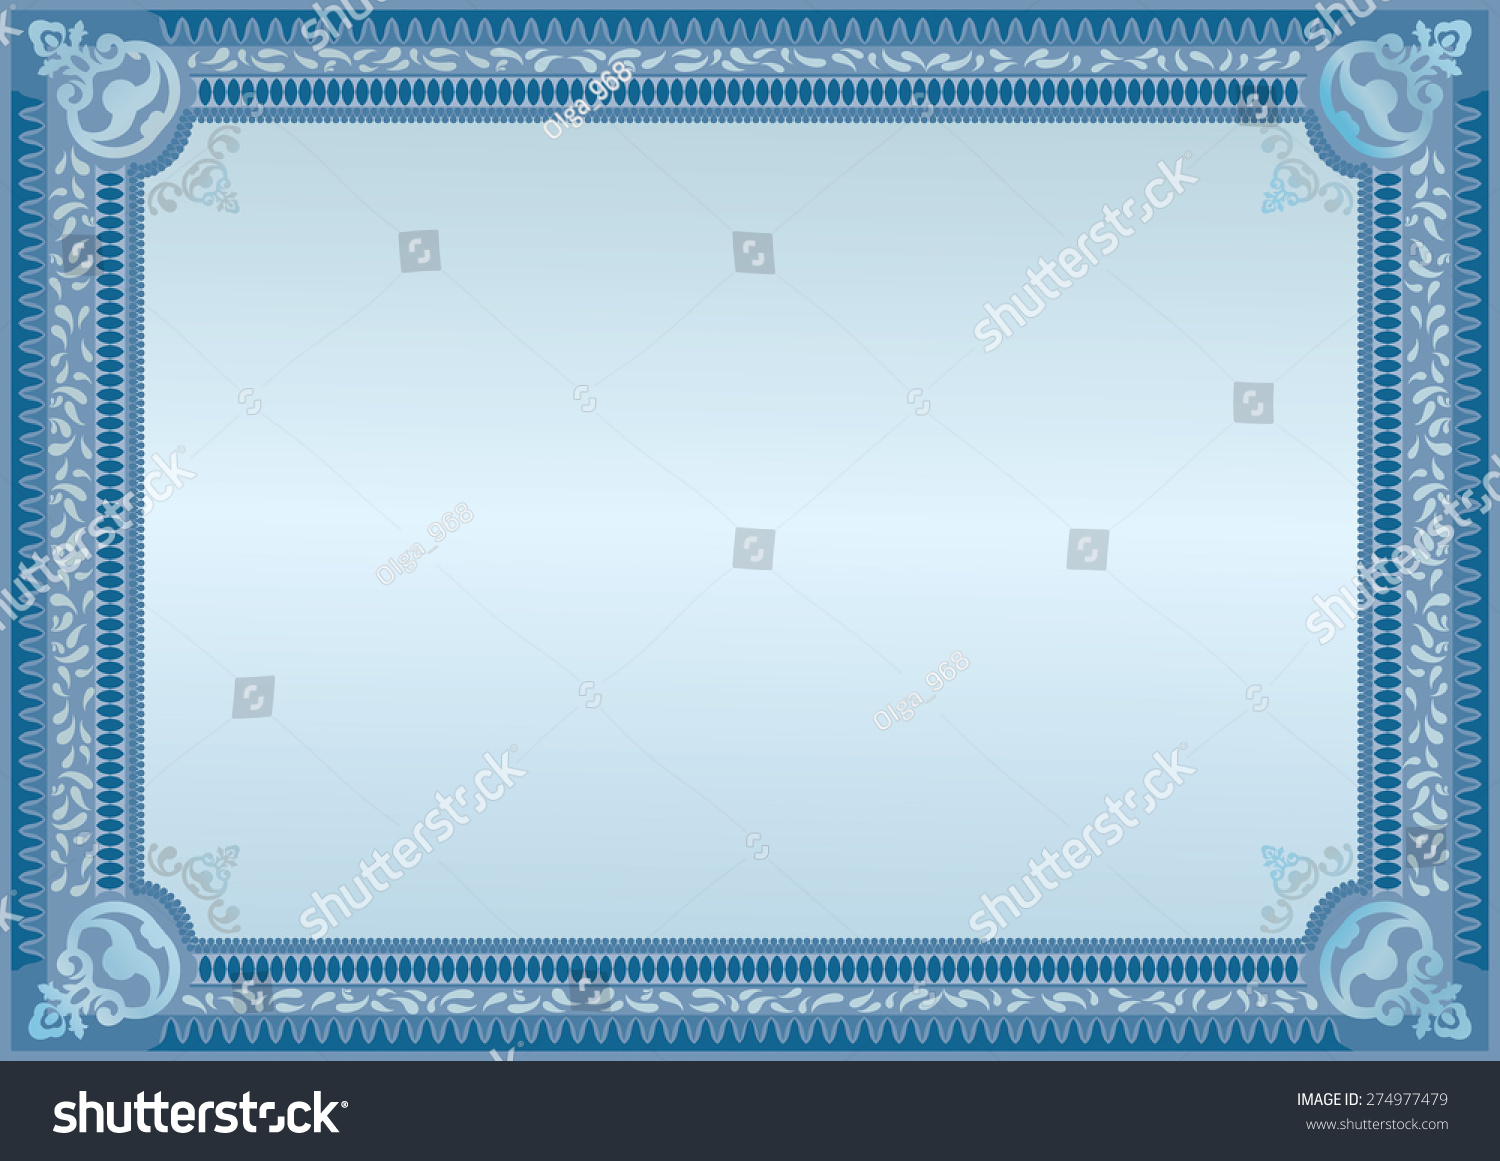 Blue Border Certificate Stock Vector HD (Royalty Free) 274977479 ...